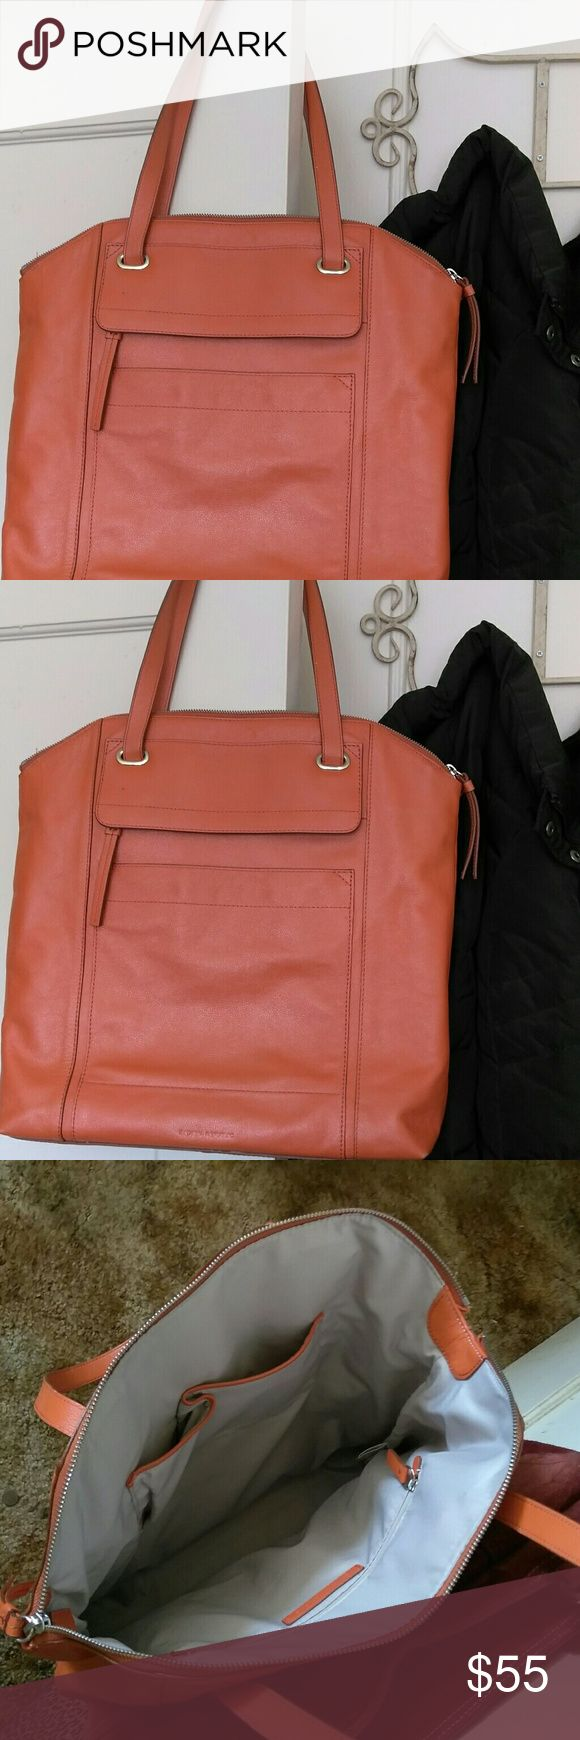 """Banana? Republic Tote Bag Purse Awesome like new condition BR bag is ready to enjoy. About 14"""" by 16"""". Lots of interior pockets. Banana Republic Bags Totes"""